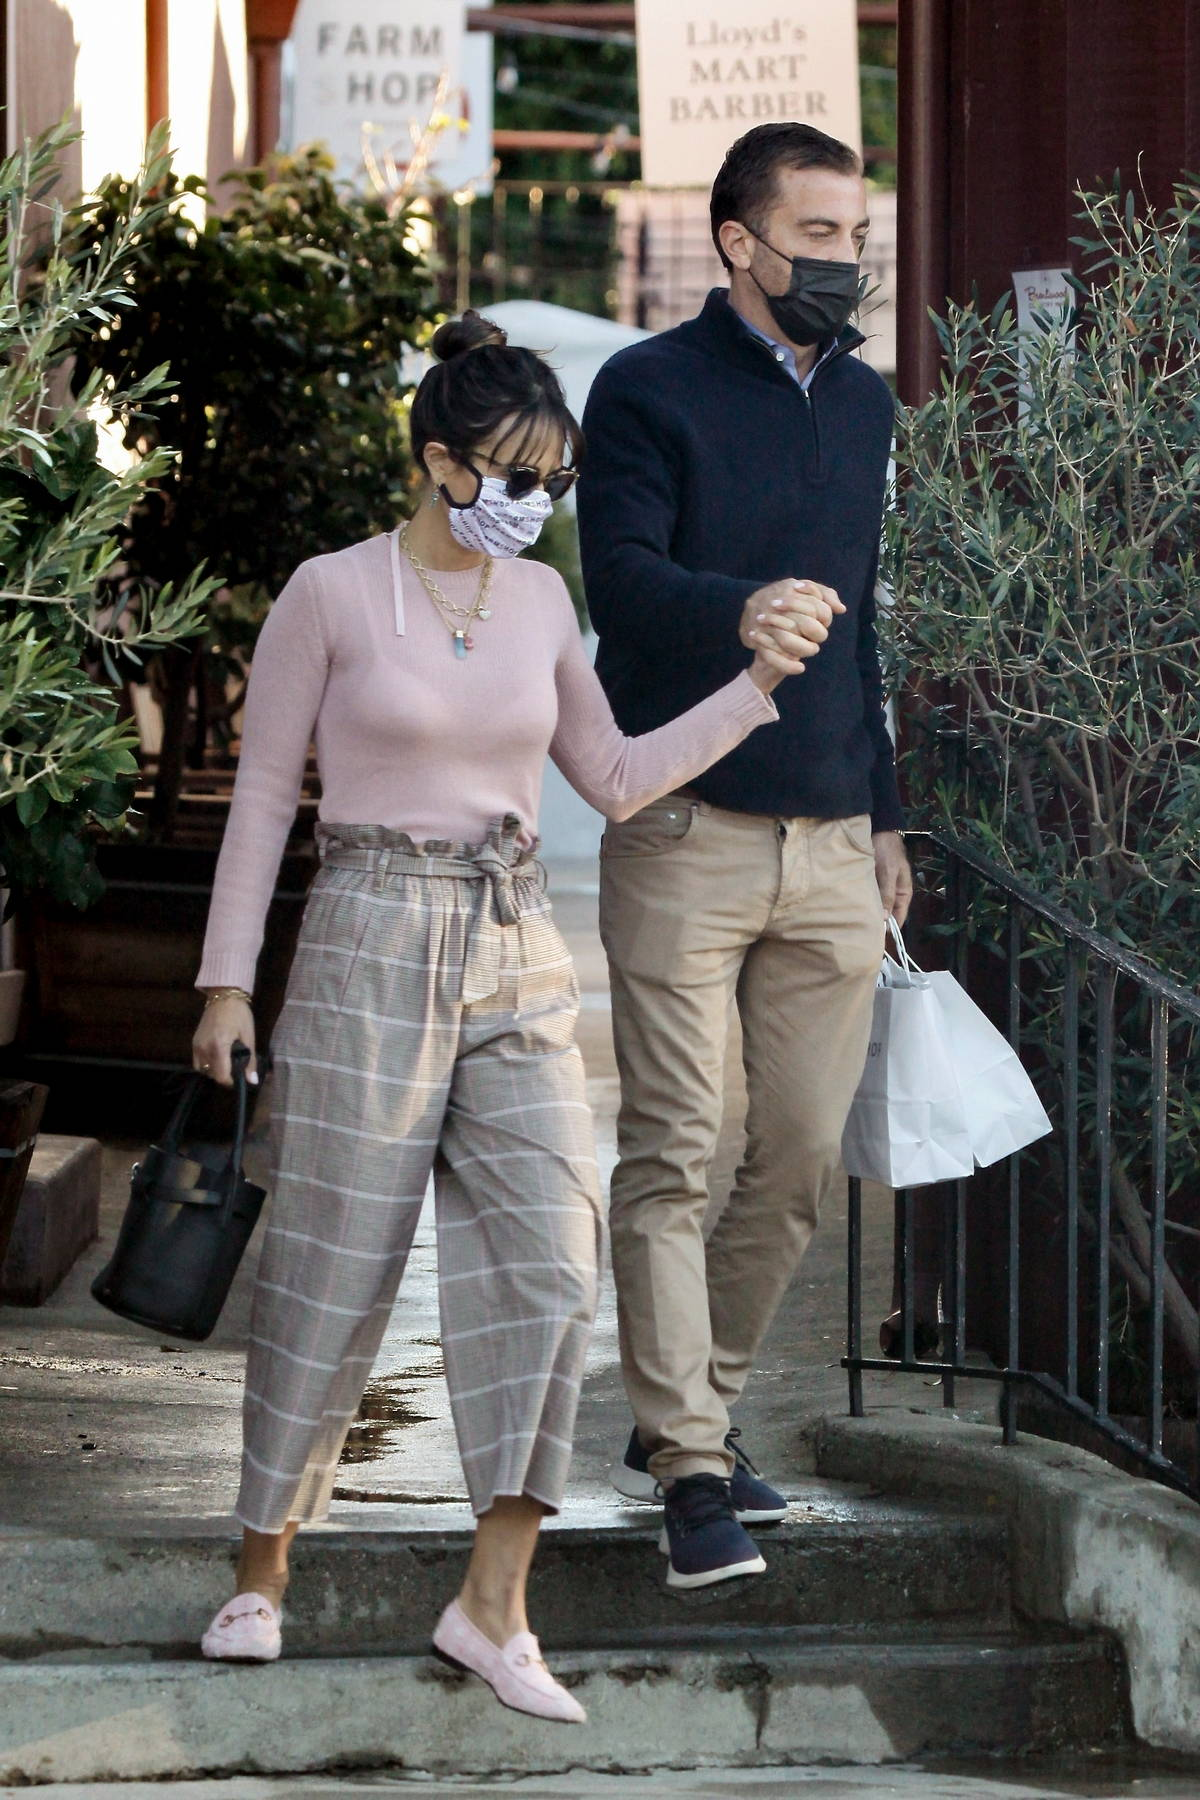 Jordana Brewster holds hands with boyfriend Mason Morfit as they go shopping at Farmshop in Los Angeles